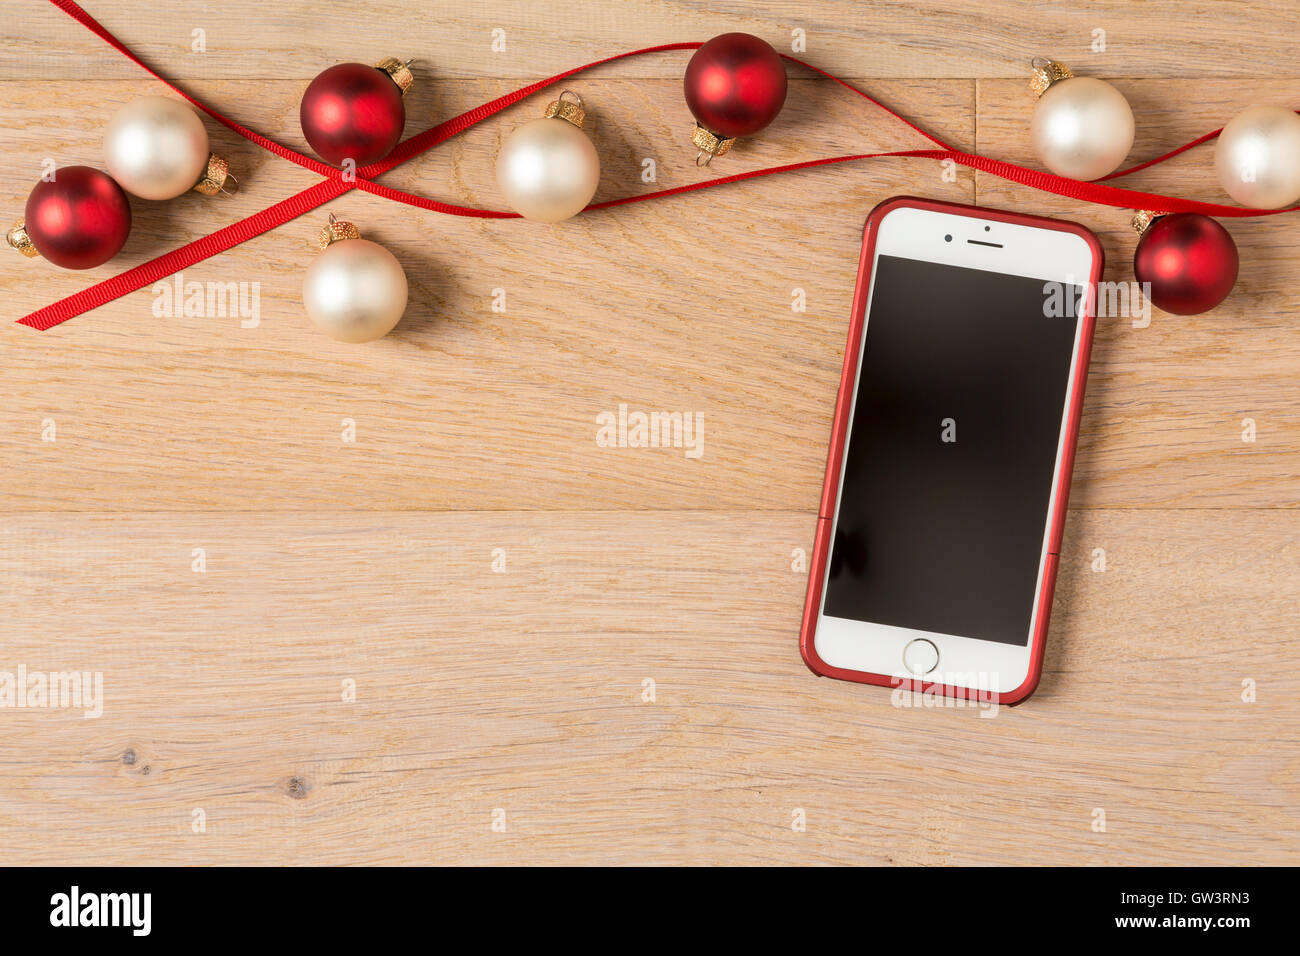 Cell Phone IPhone 6 With Festive Holiday Christmas Decorations On Rustic Wood Background